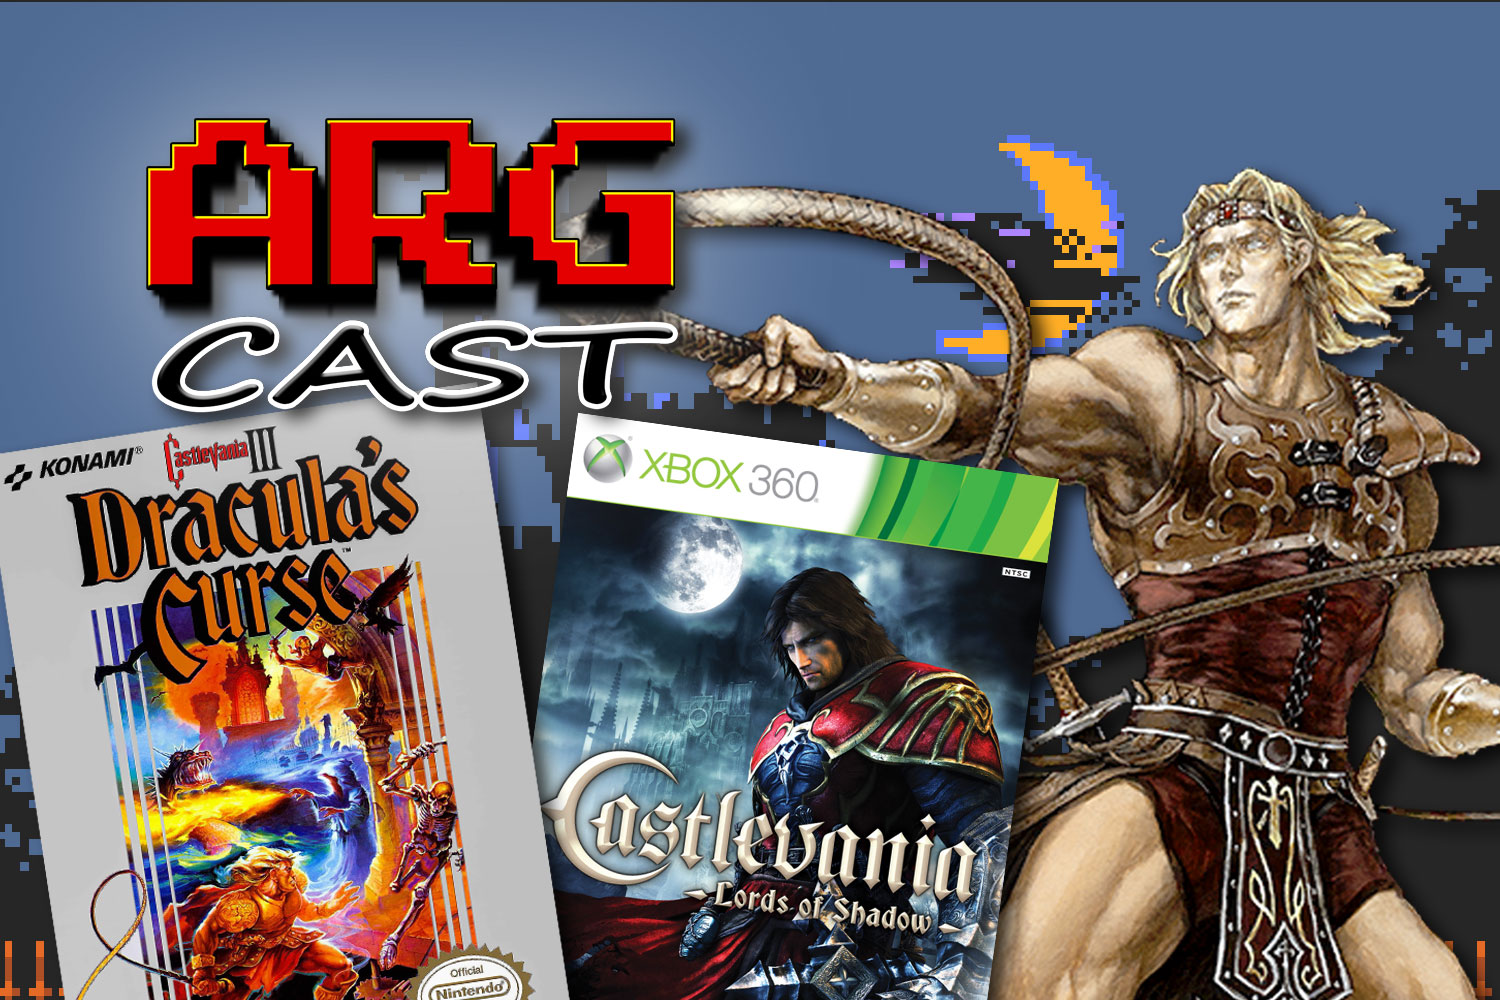 ARGcast #181: Whipping It in Castlevania w/ Andrew Moretti